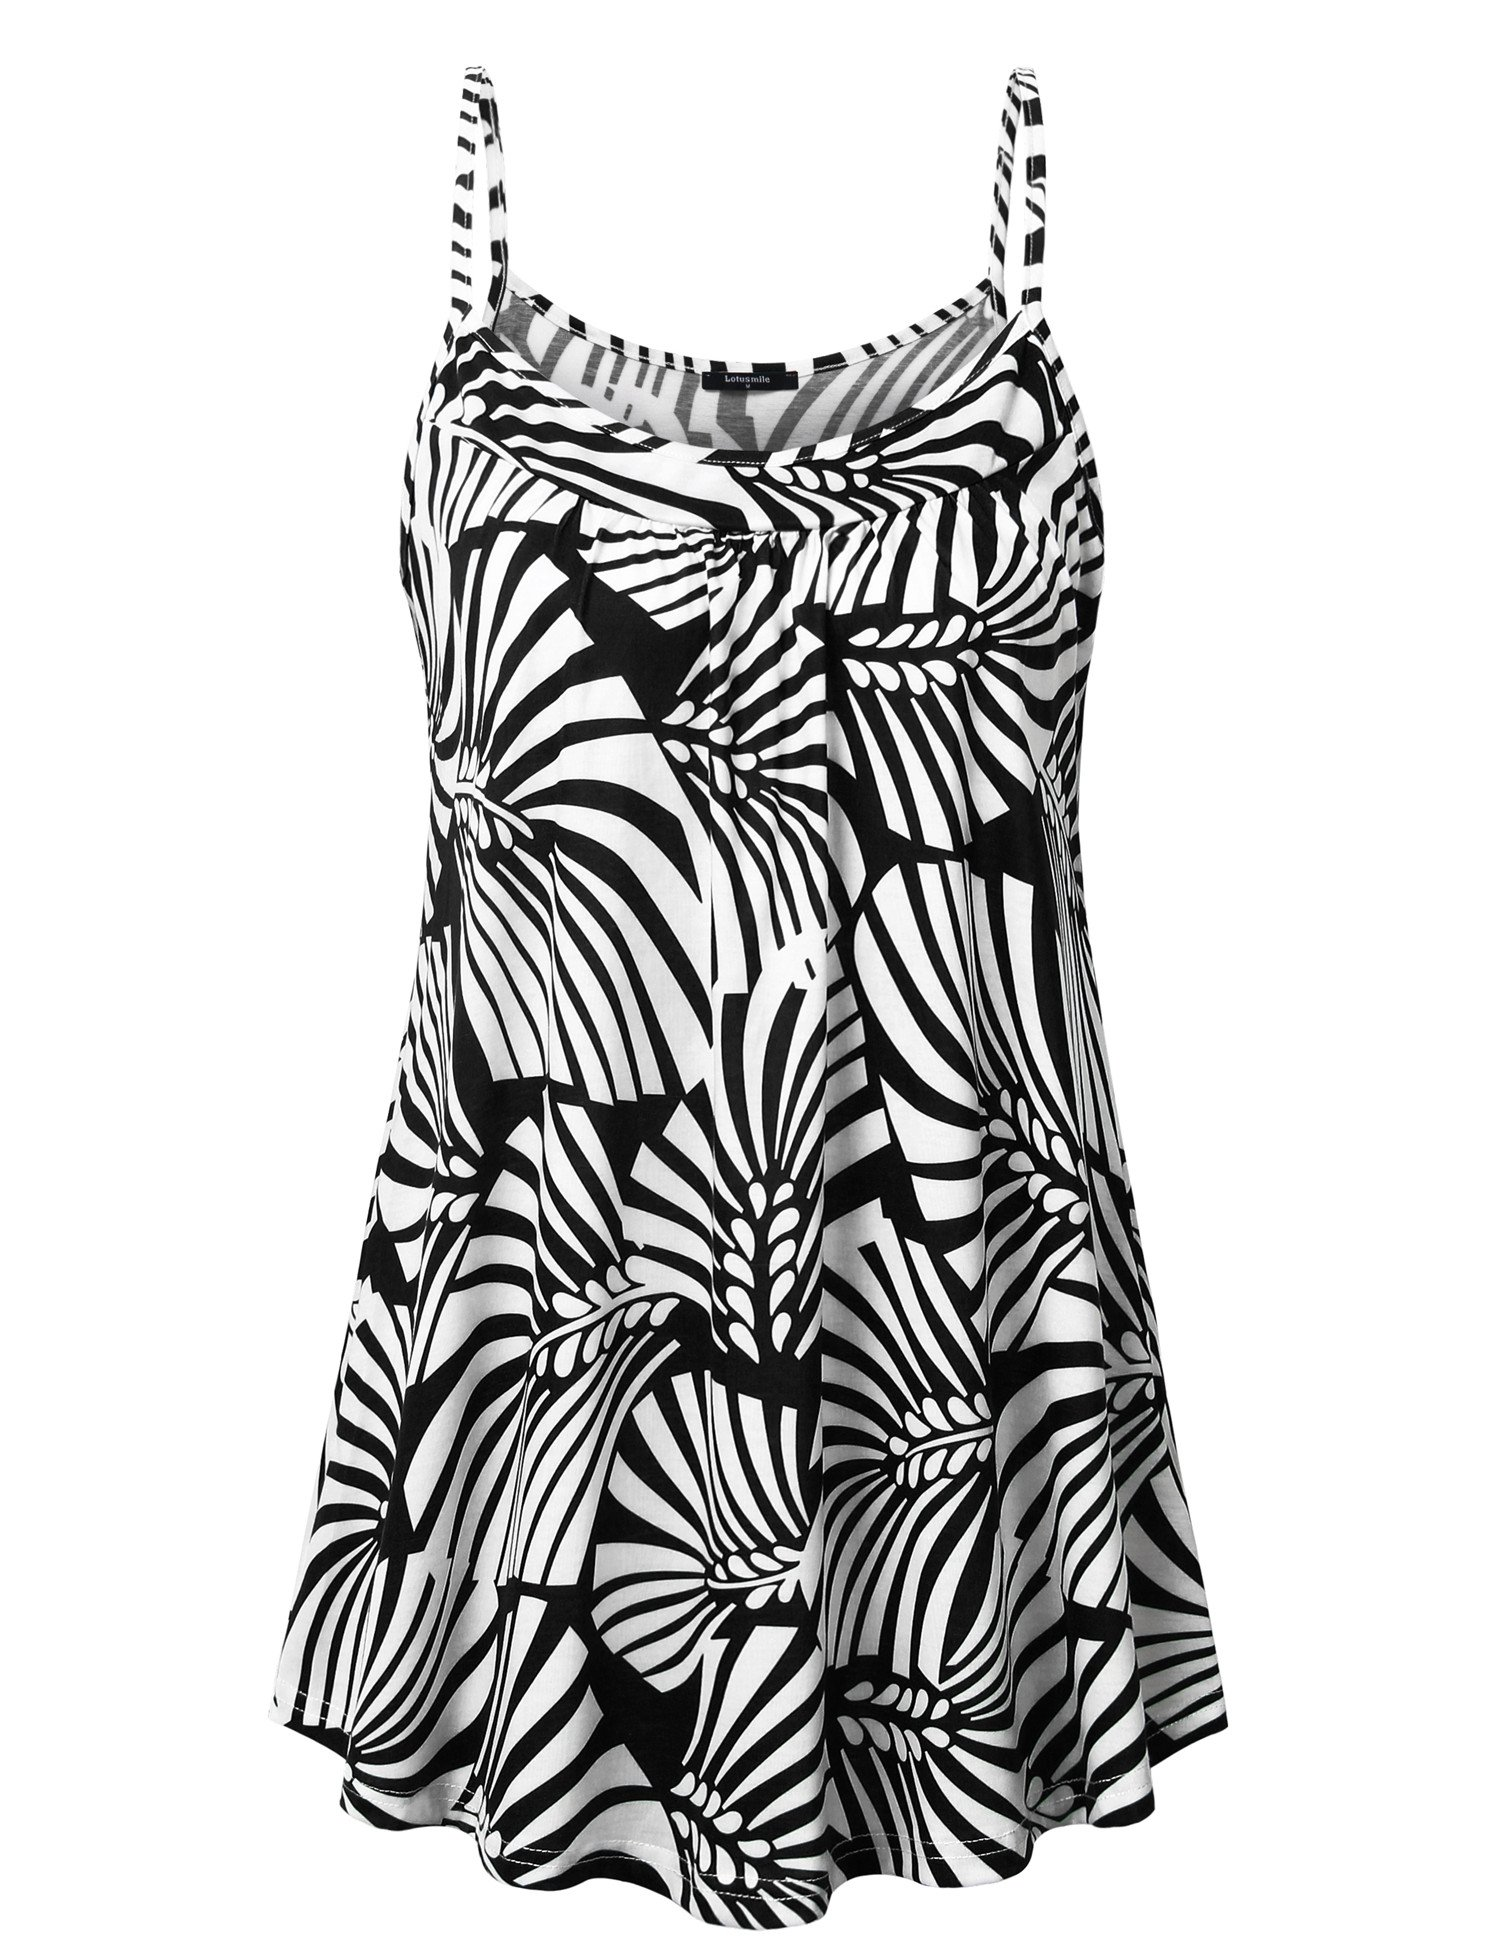 Lotusmile Women's Summer Basic Printed Tops Loose Fit Soft Spaghetti Strap Camisoles Swing Tunic Tank Multicolor Black/M